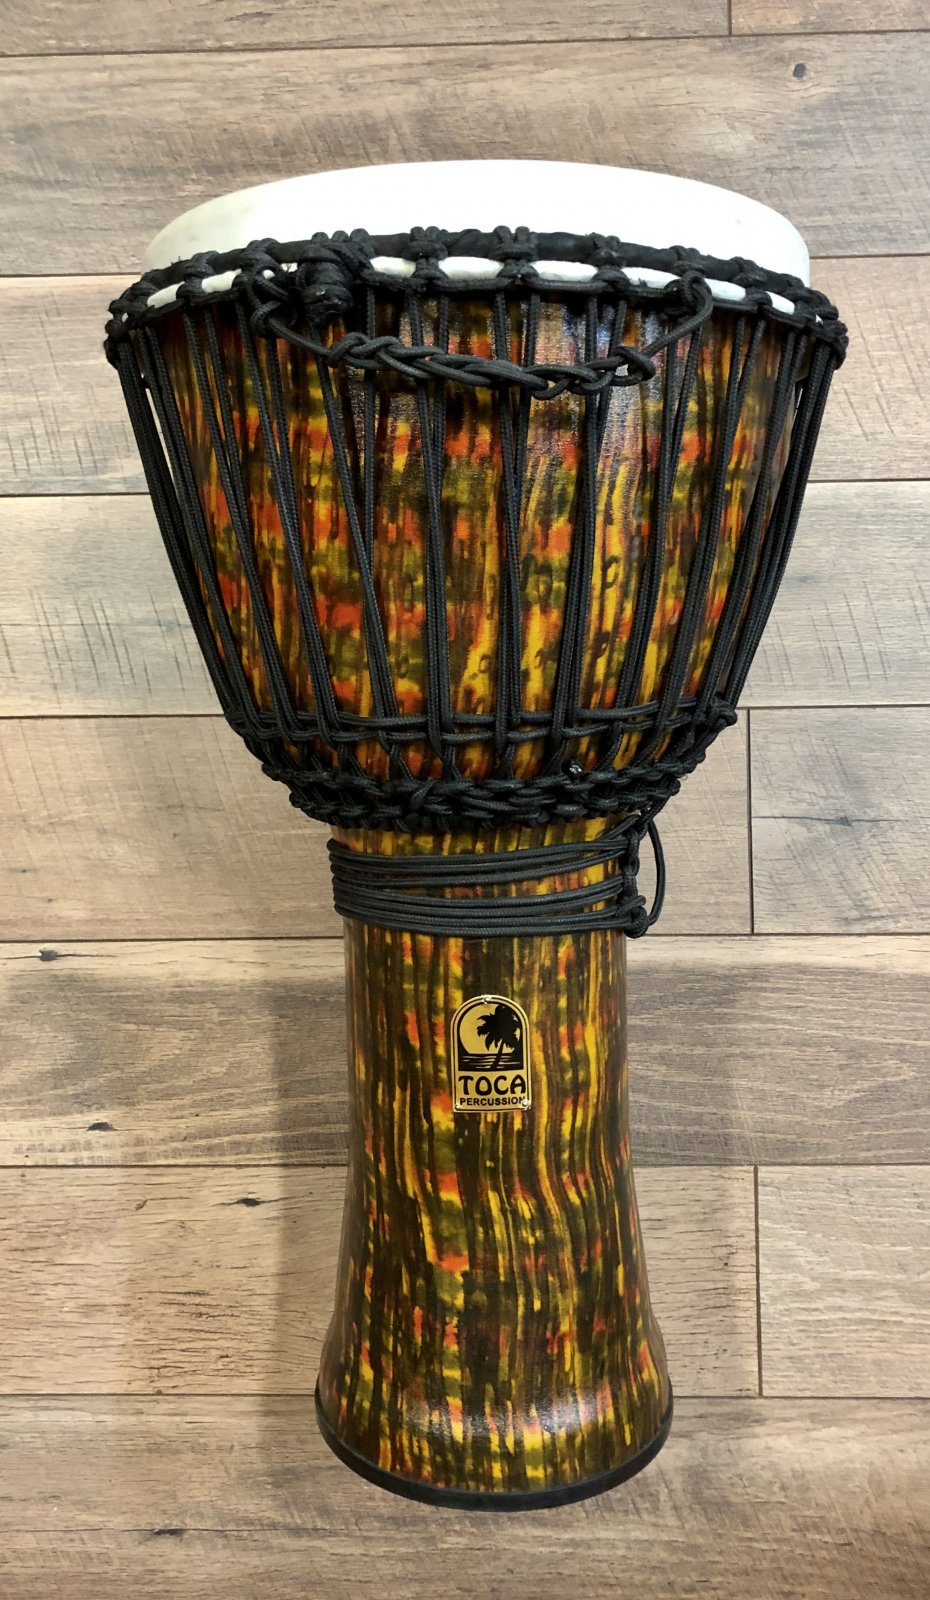 USED - Toca Freestyle Cannon Djembe w/Bag